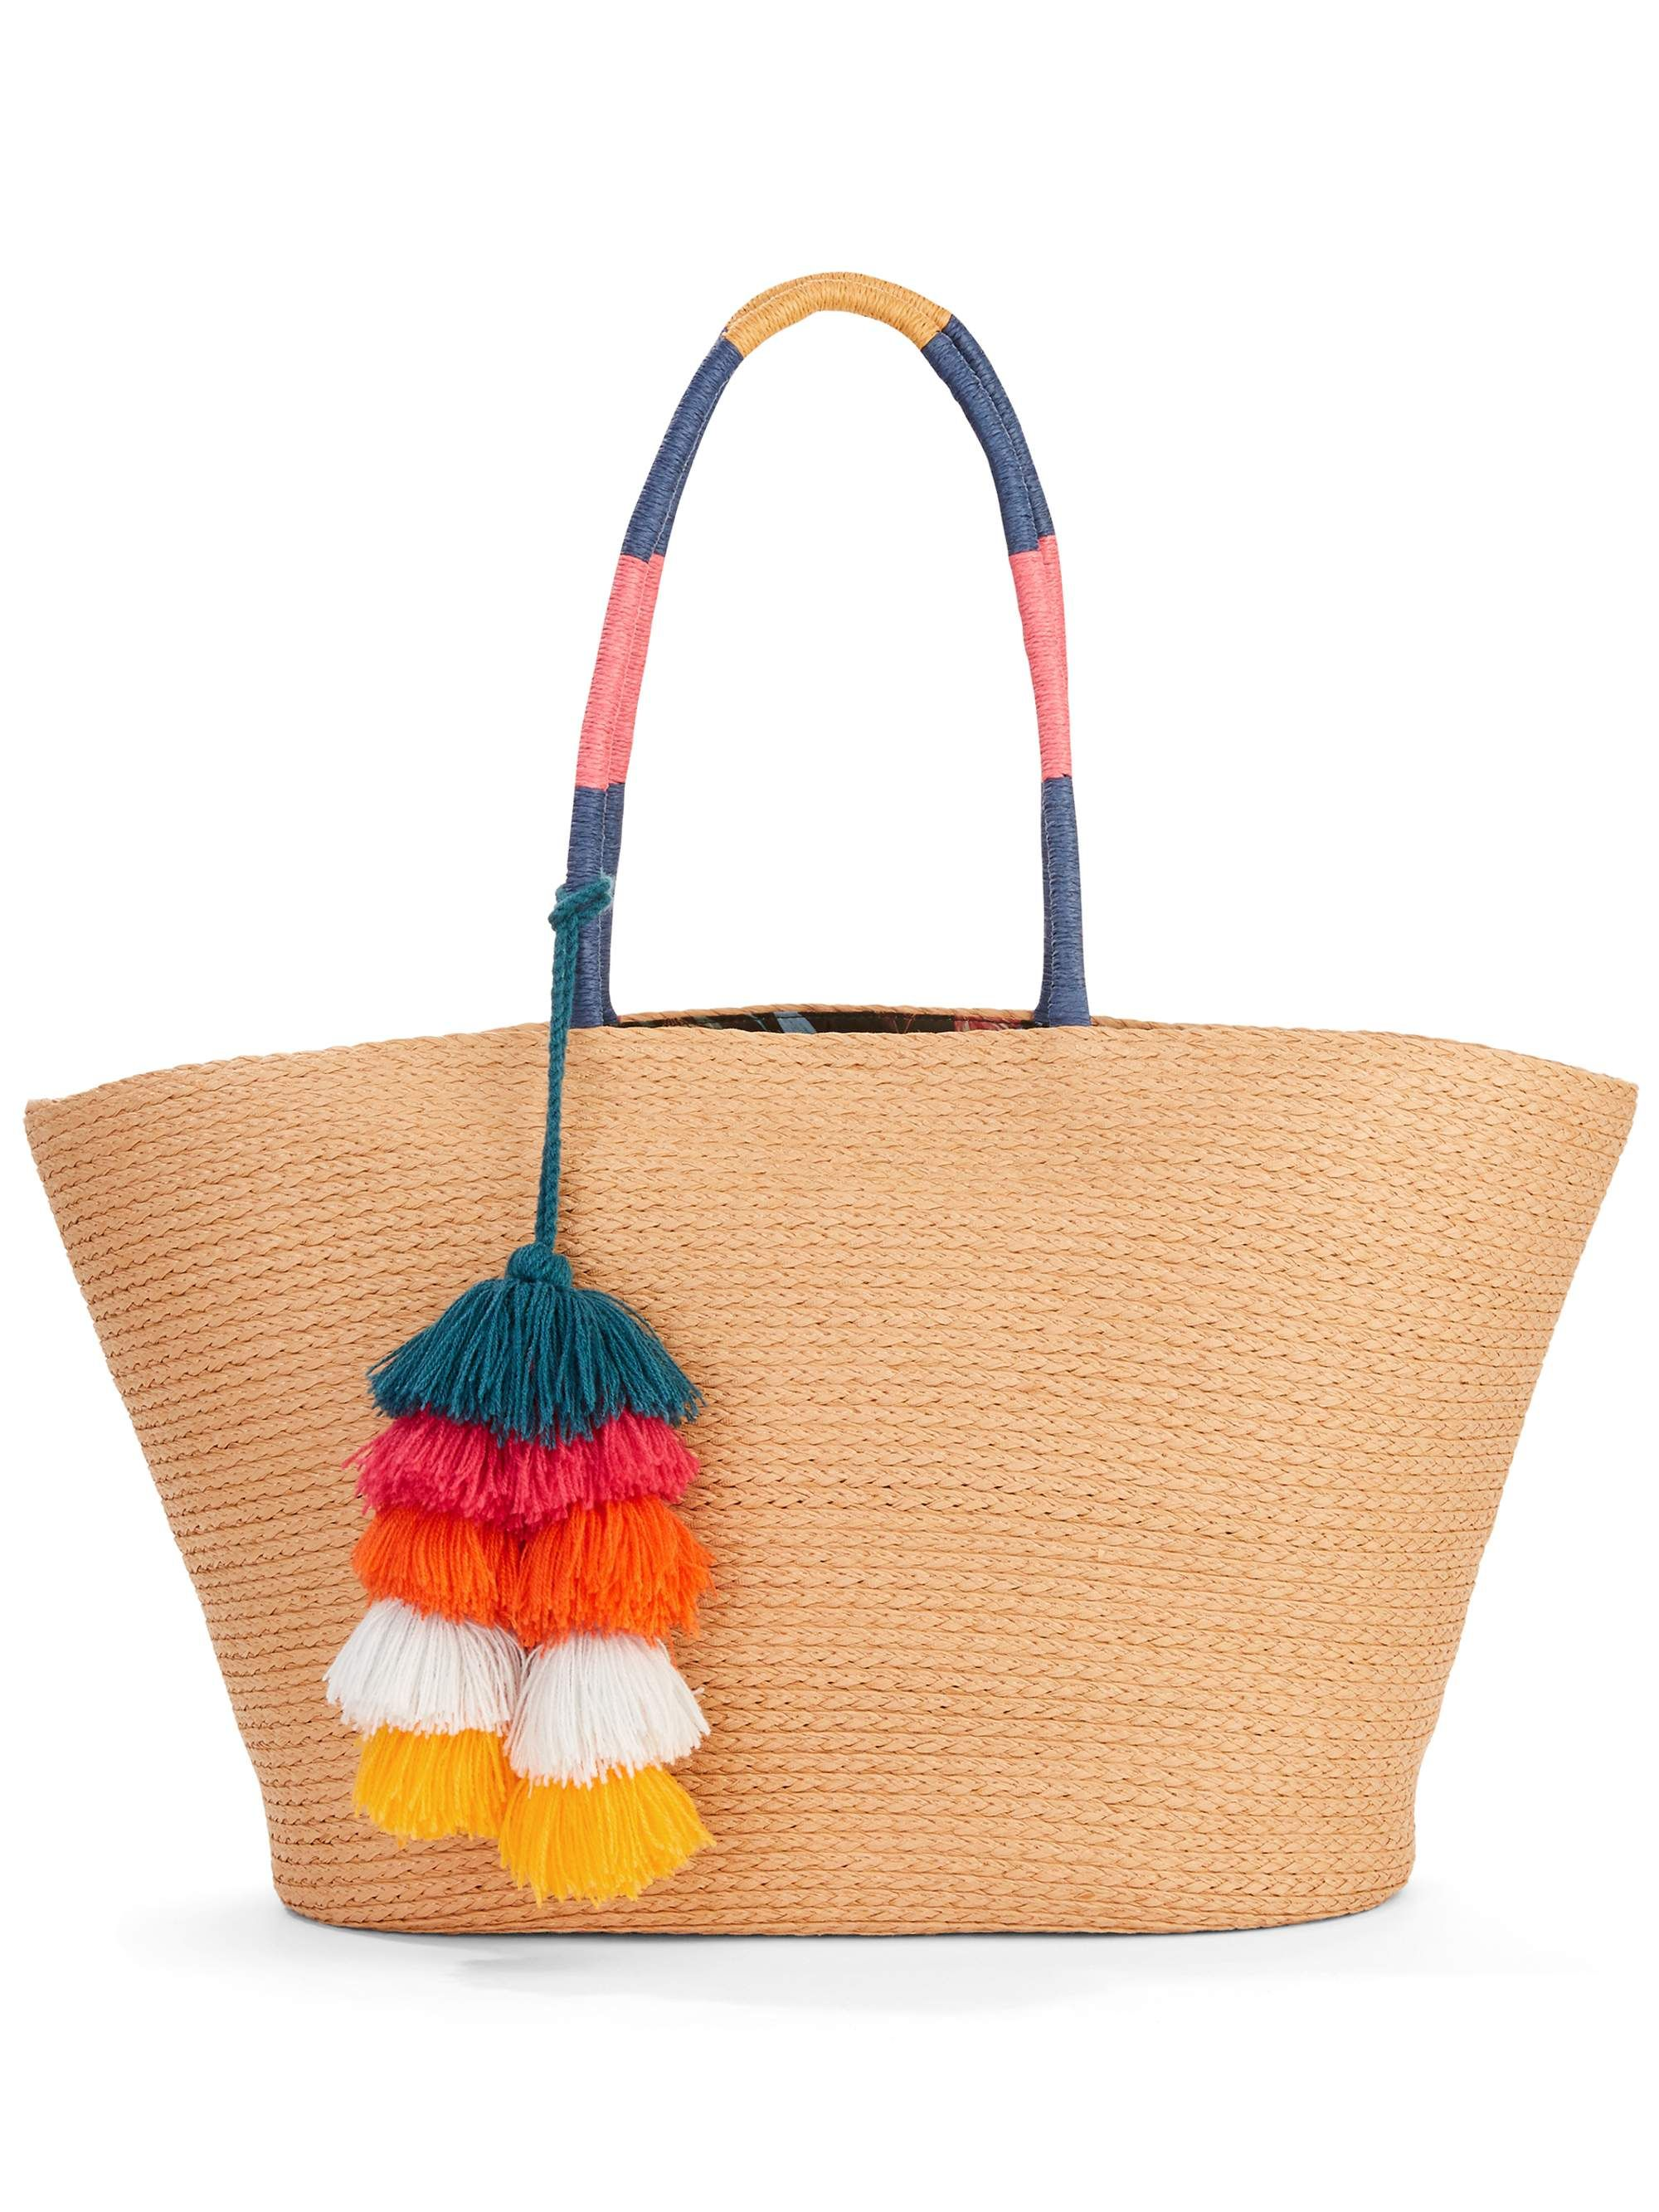 148d7269f62 Clothing in 2019 | My Style | Straw tote, Womens tote bags, Bag ...